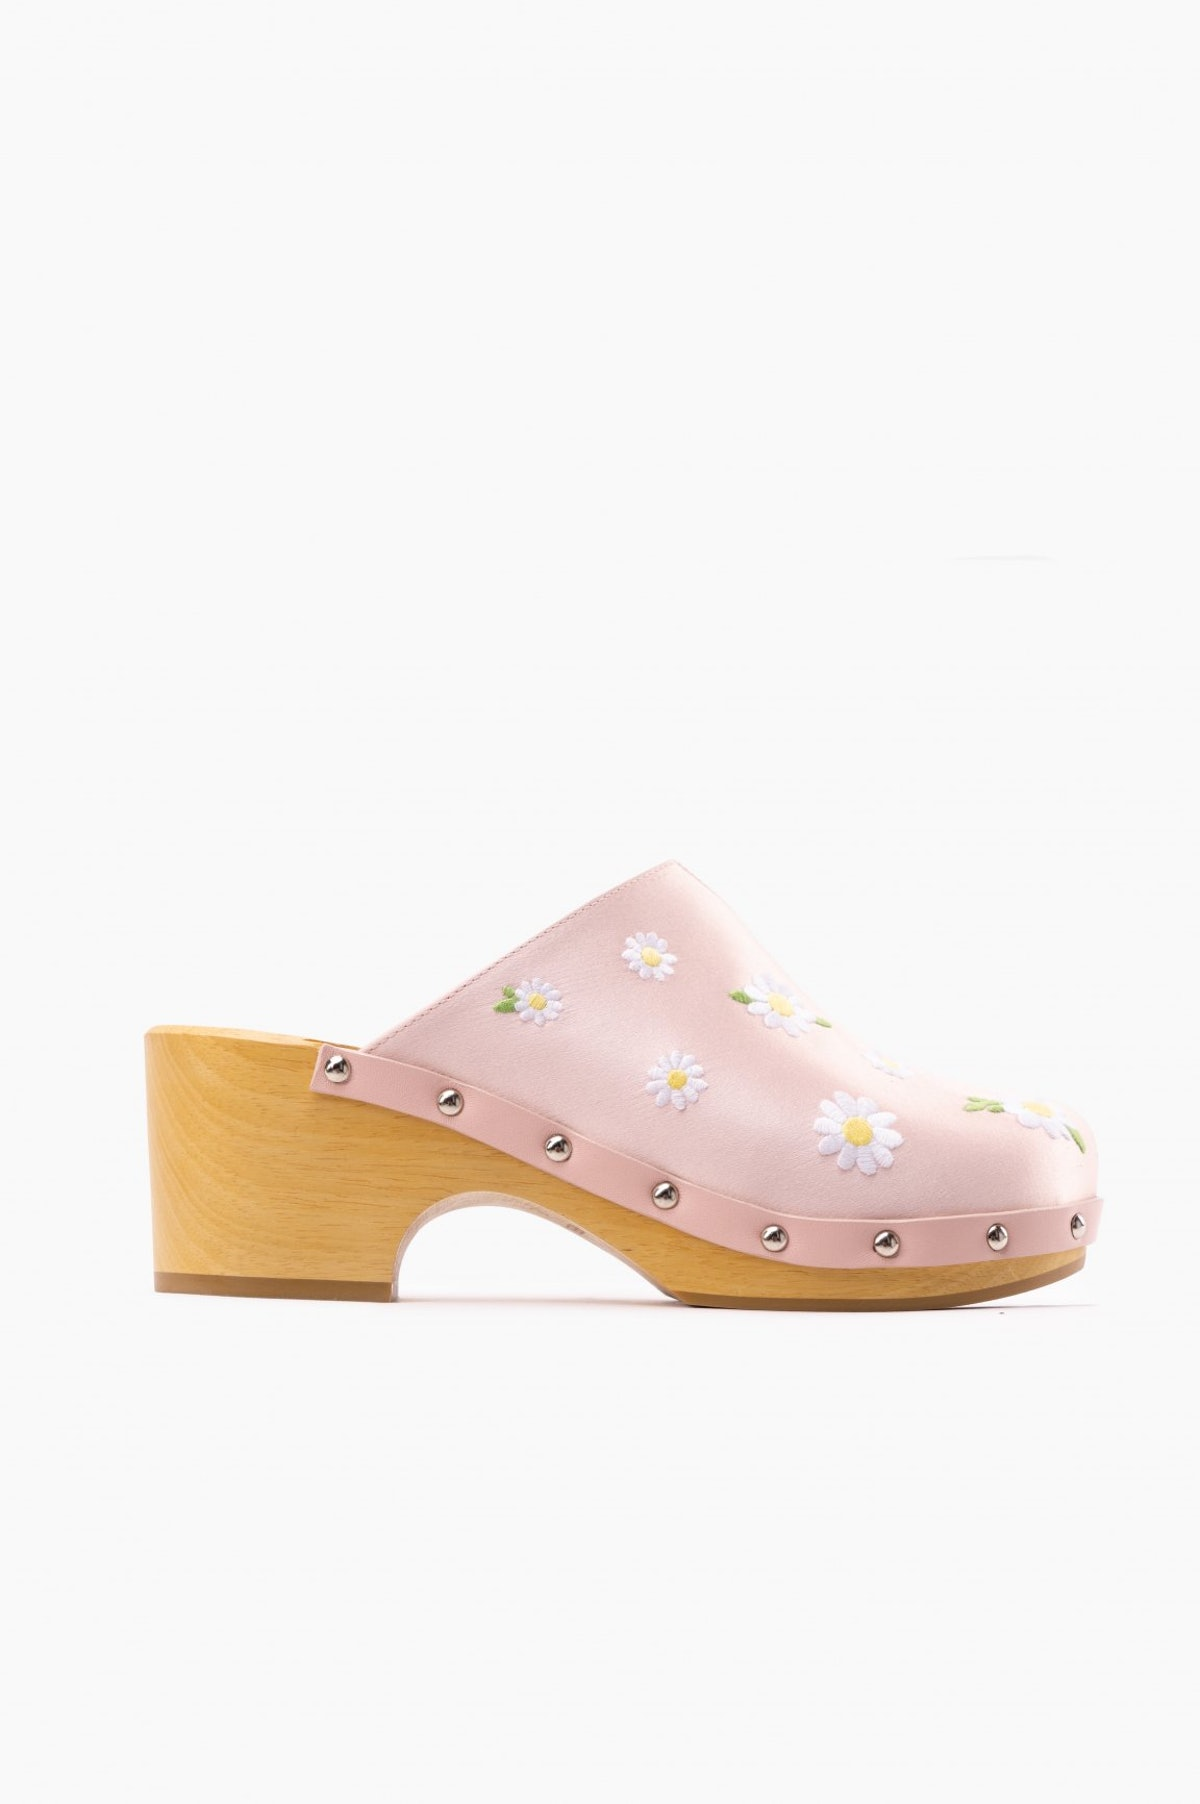 Matilda Daisies Embroidered Clogs in Pink